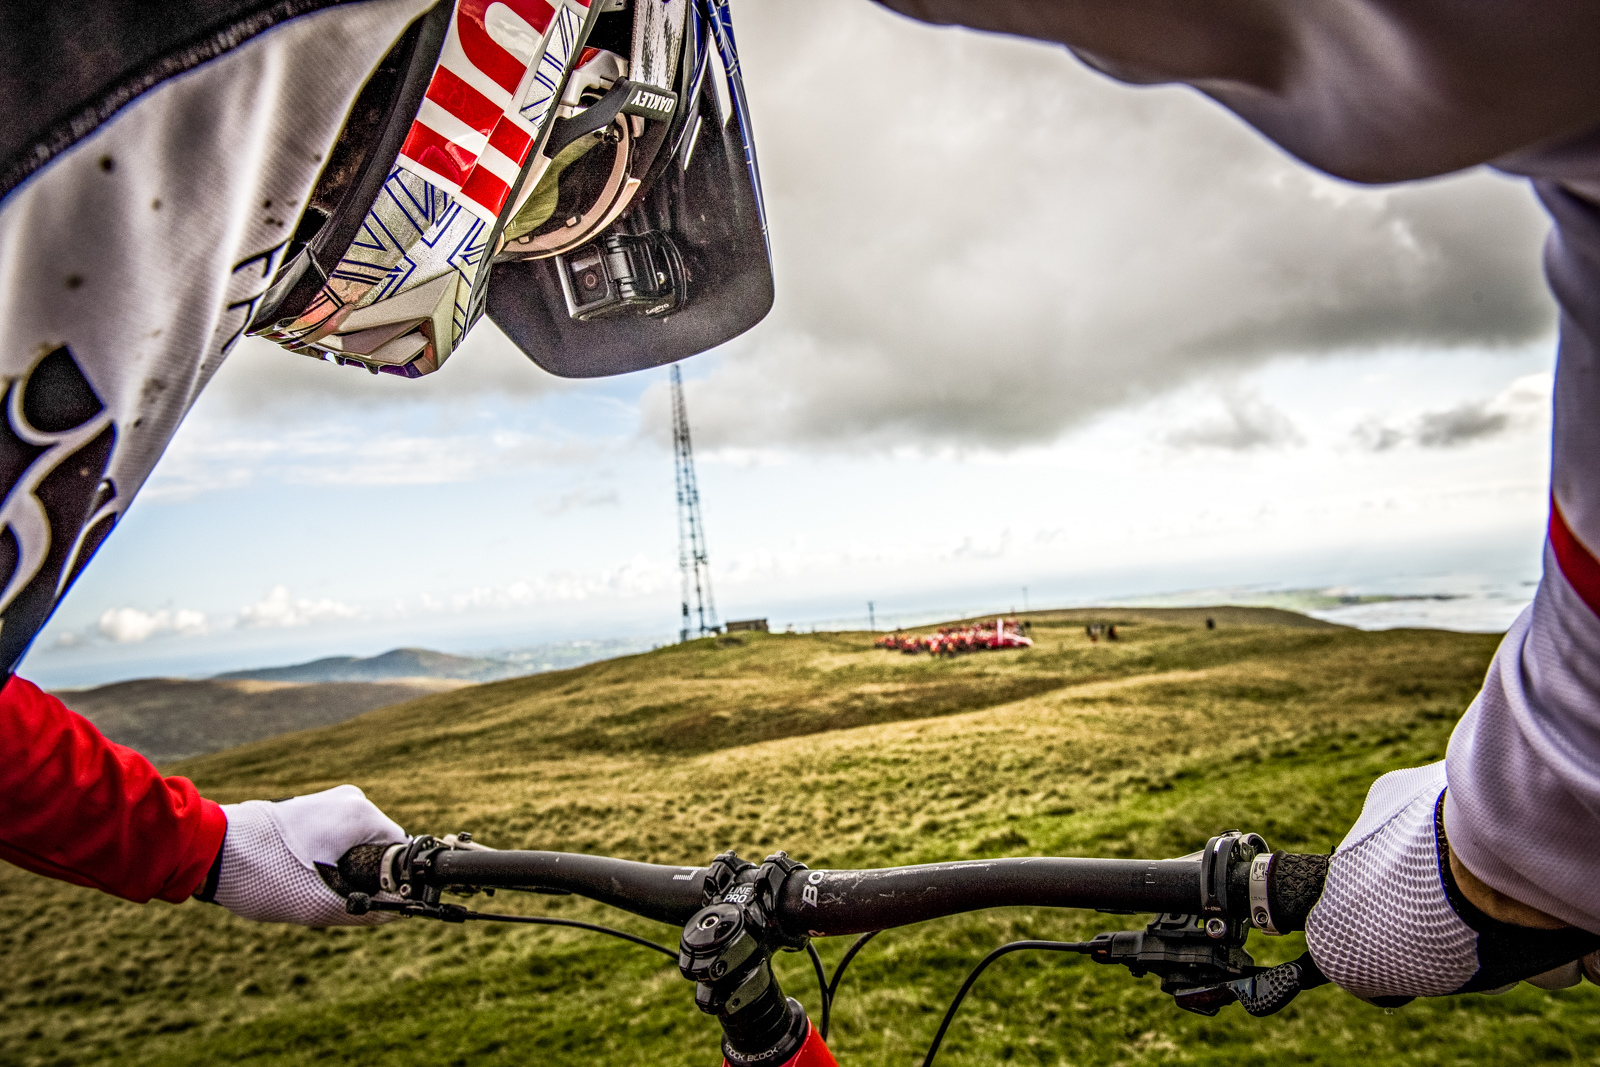 Gee gets view of his quarry. Photo - Sebastian Marko